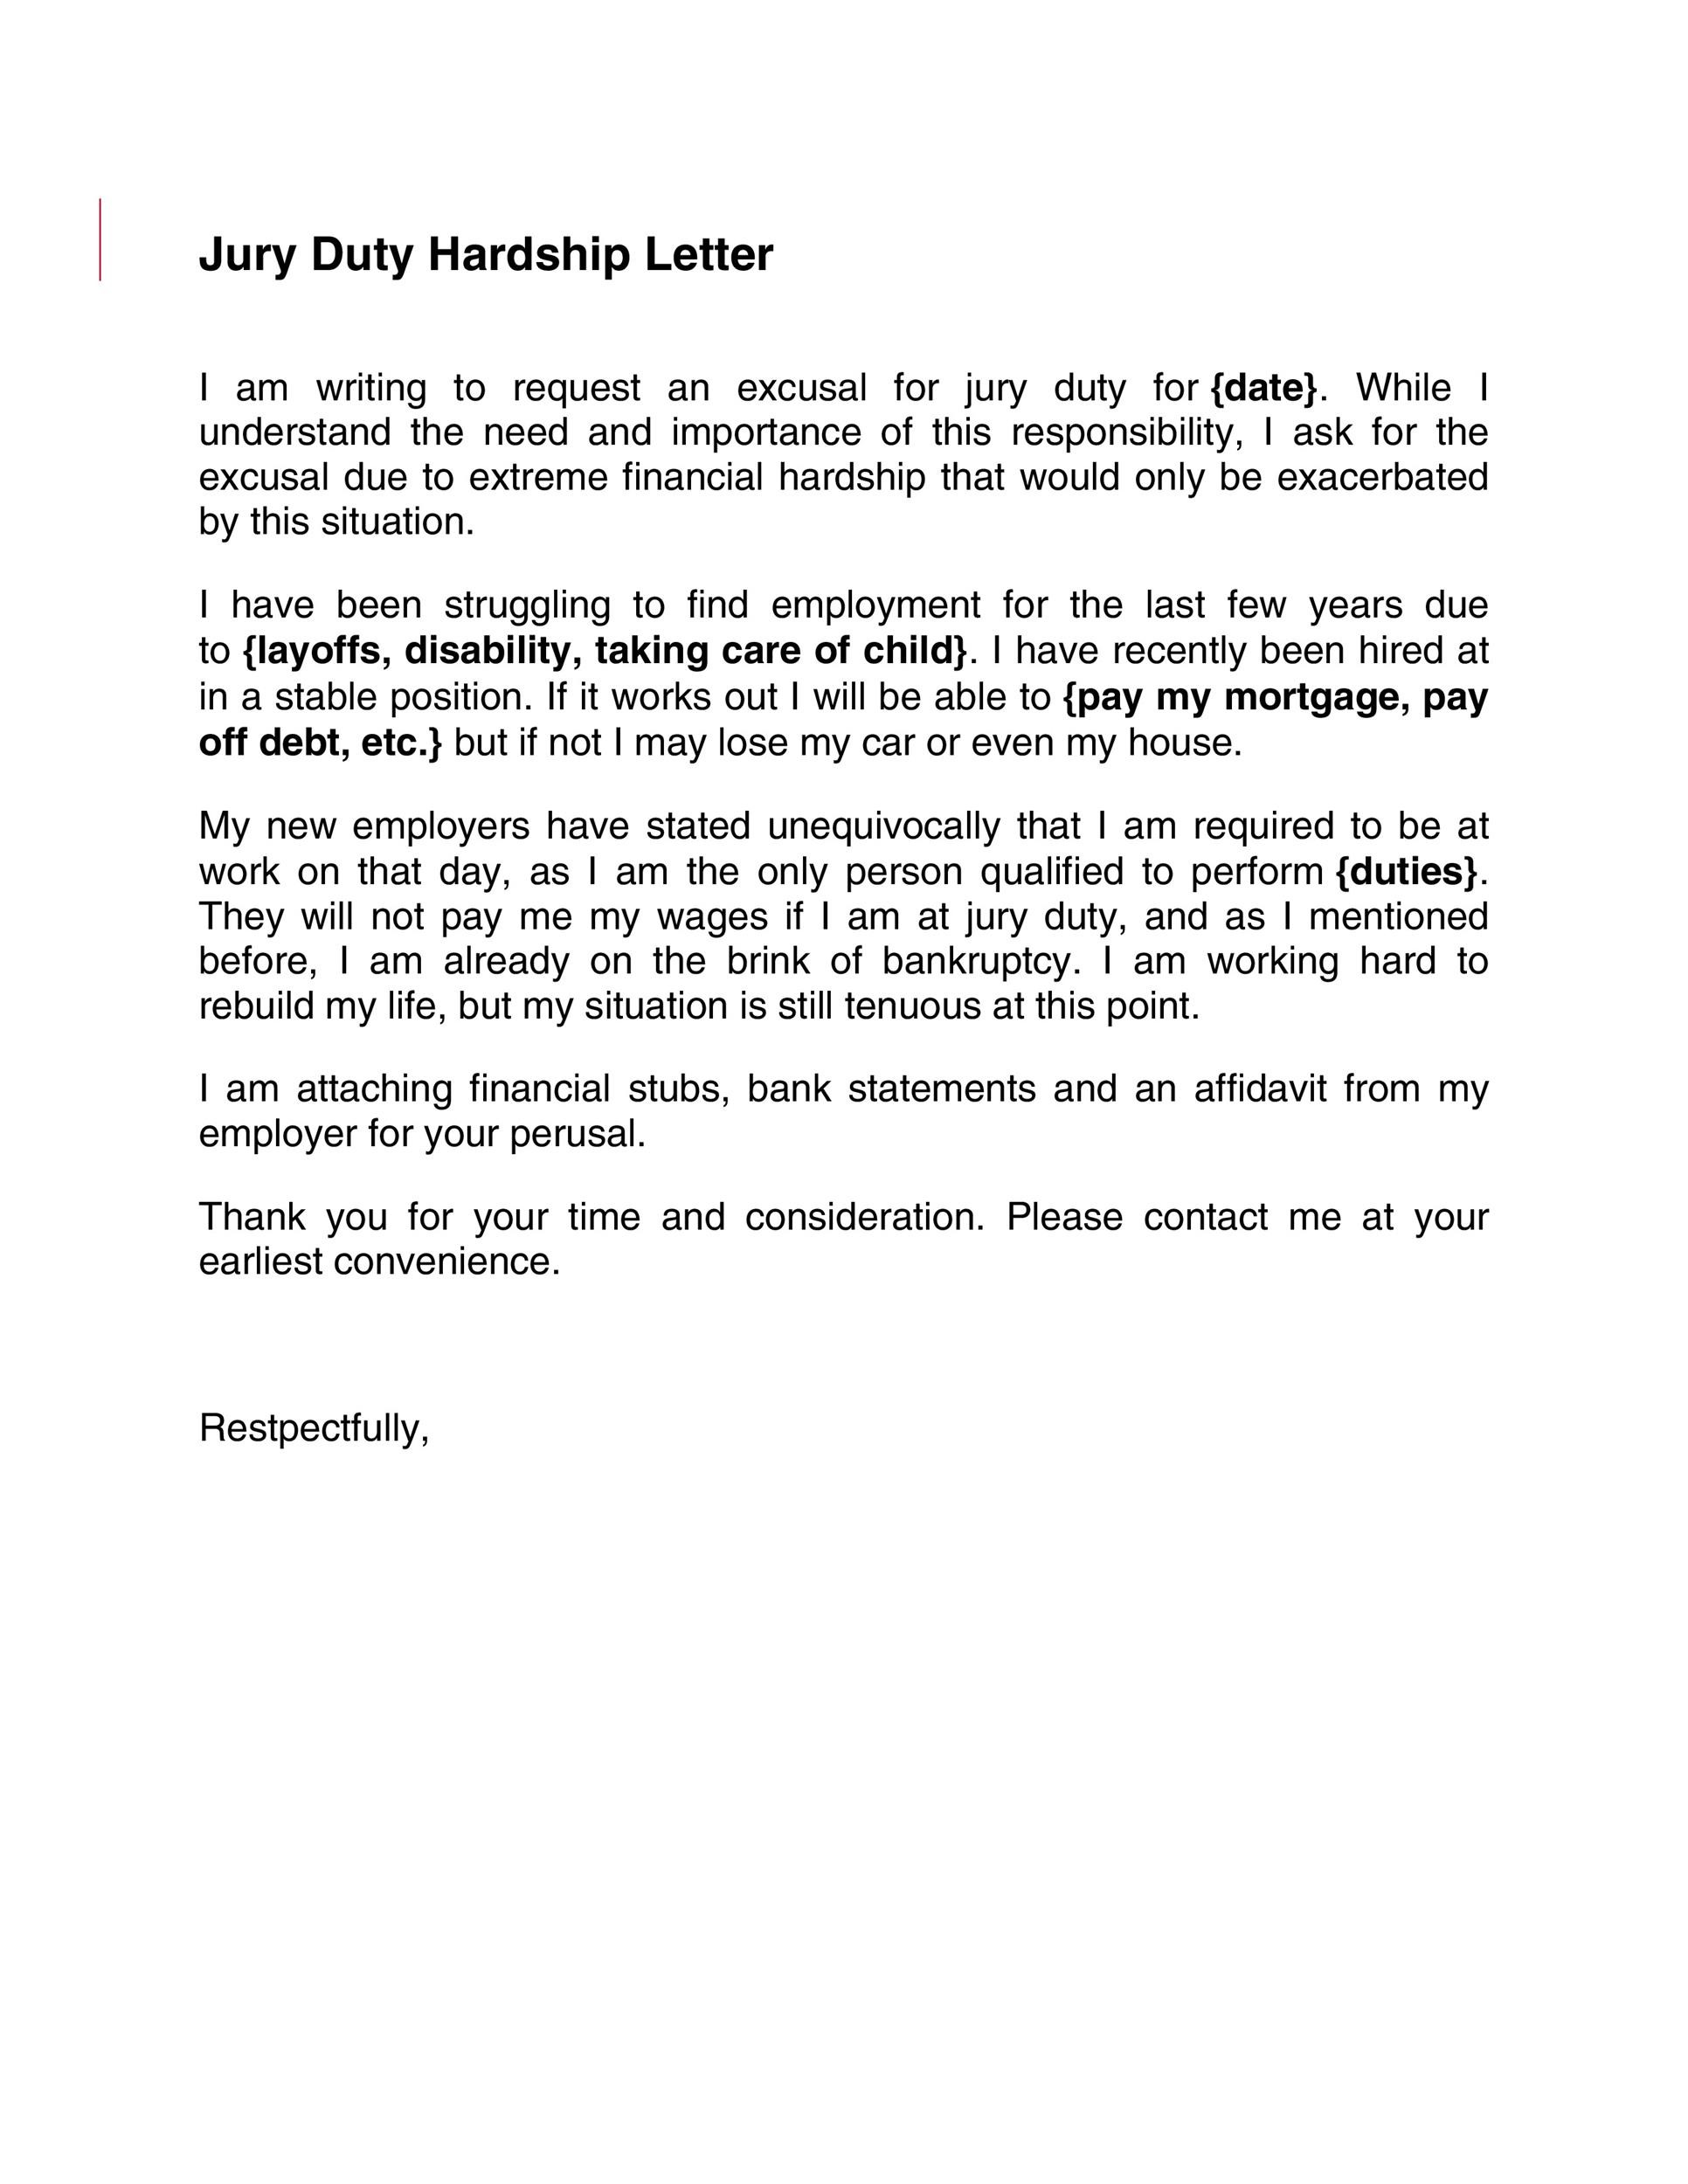 Free jury duty excuse letter template 16